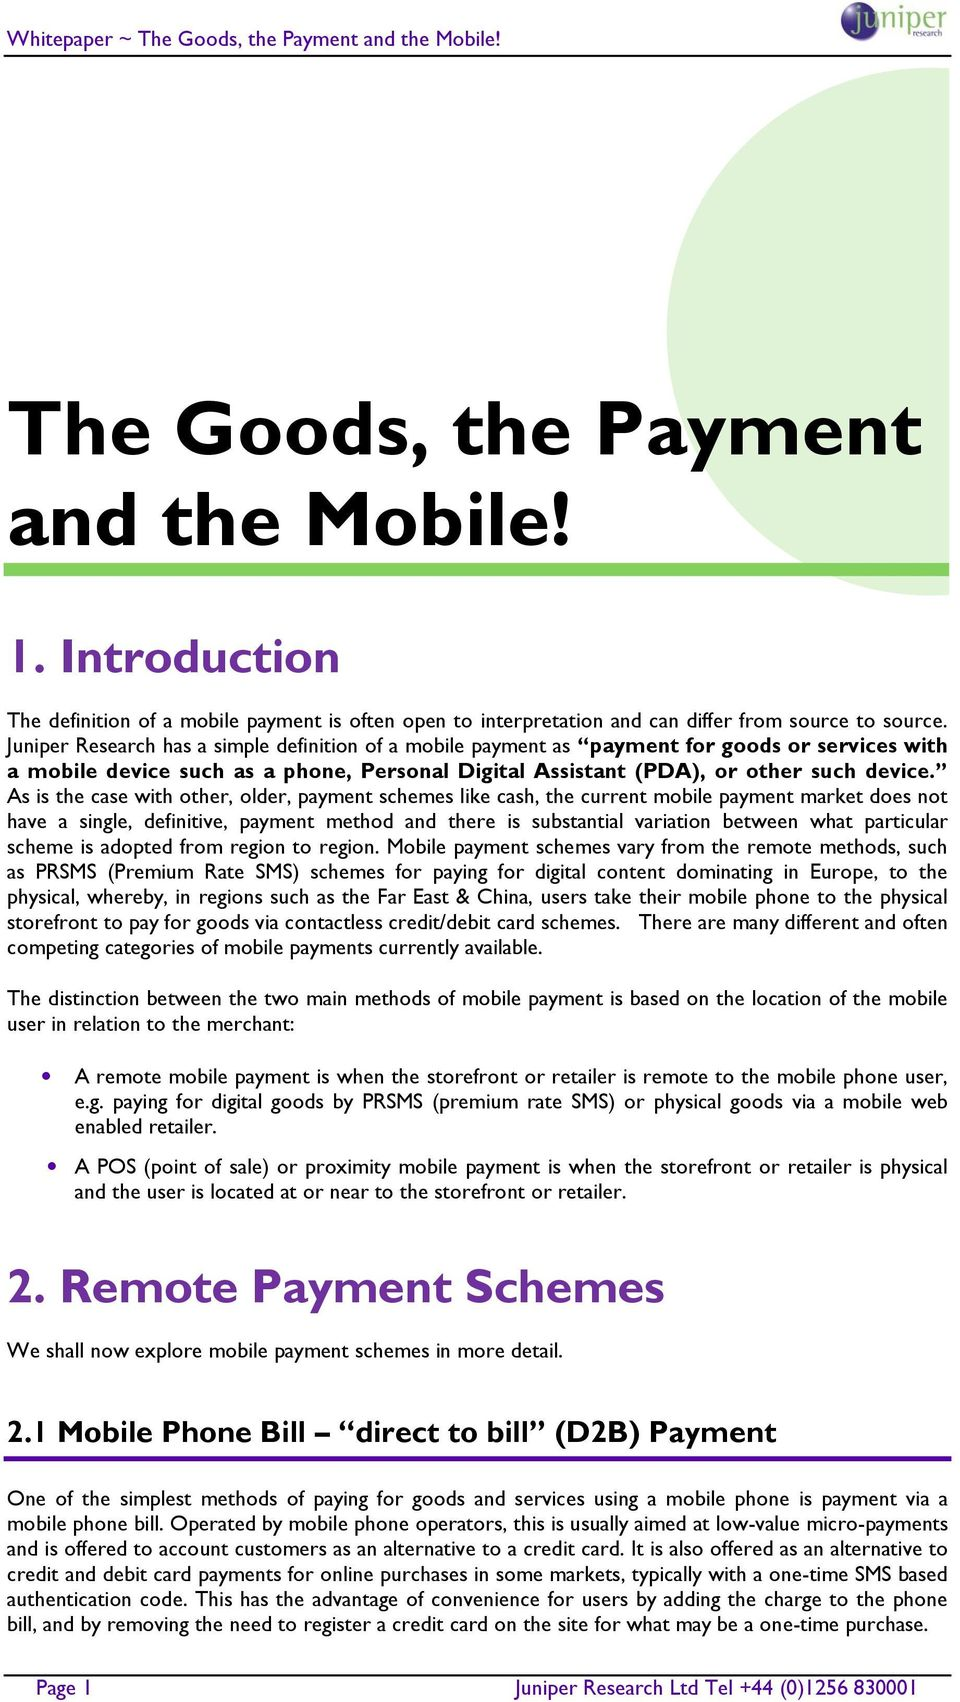 As is the case with other, older, payment schemes like cash, the current mobile payment market does not have a single, definitive, payment method and there is substantial variation between what